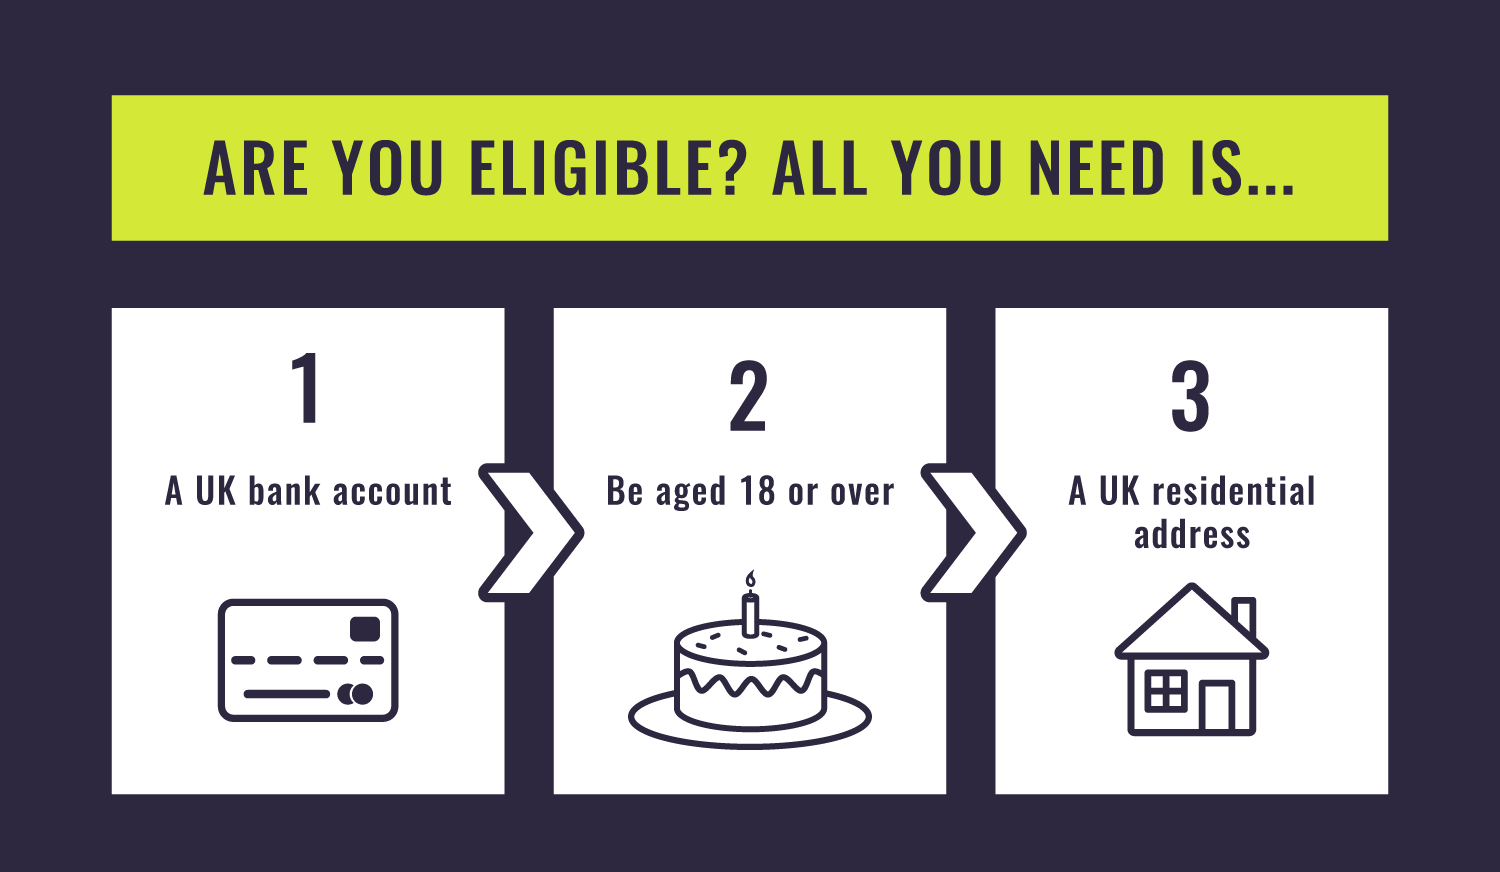 Are You Eligible?